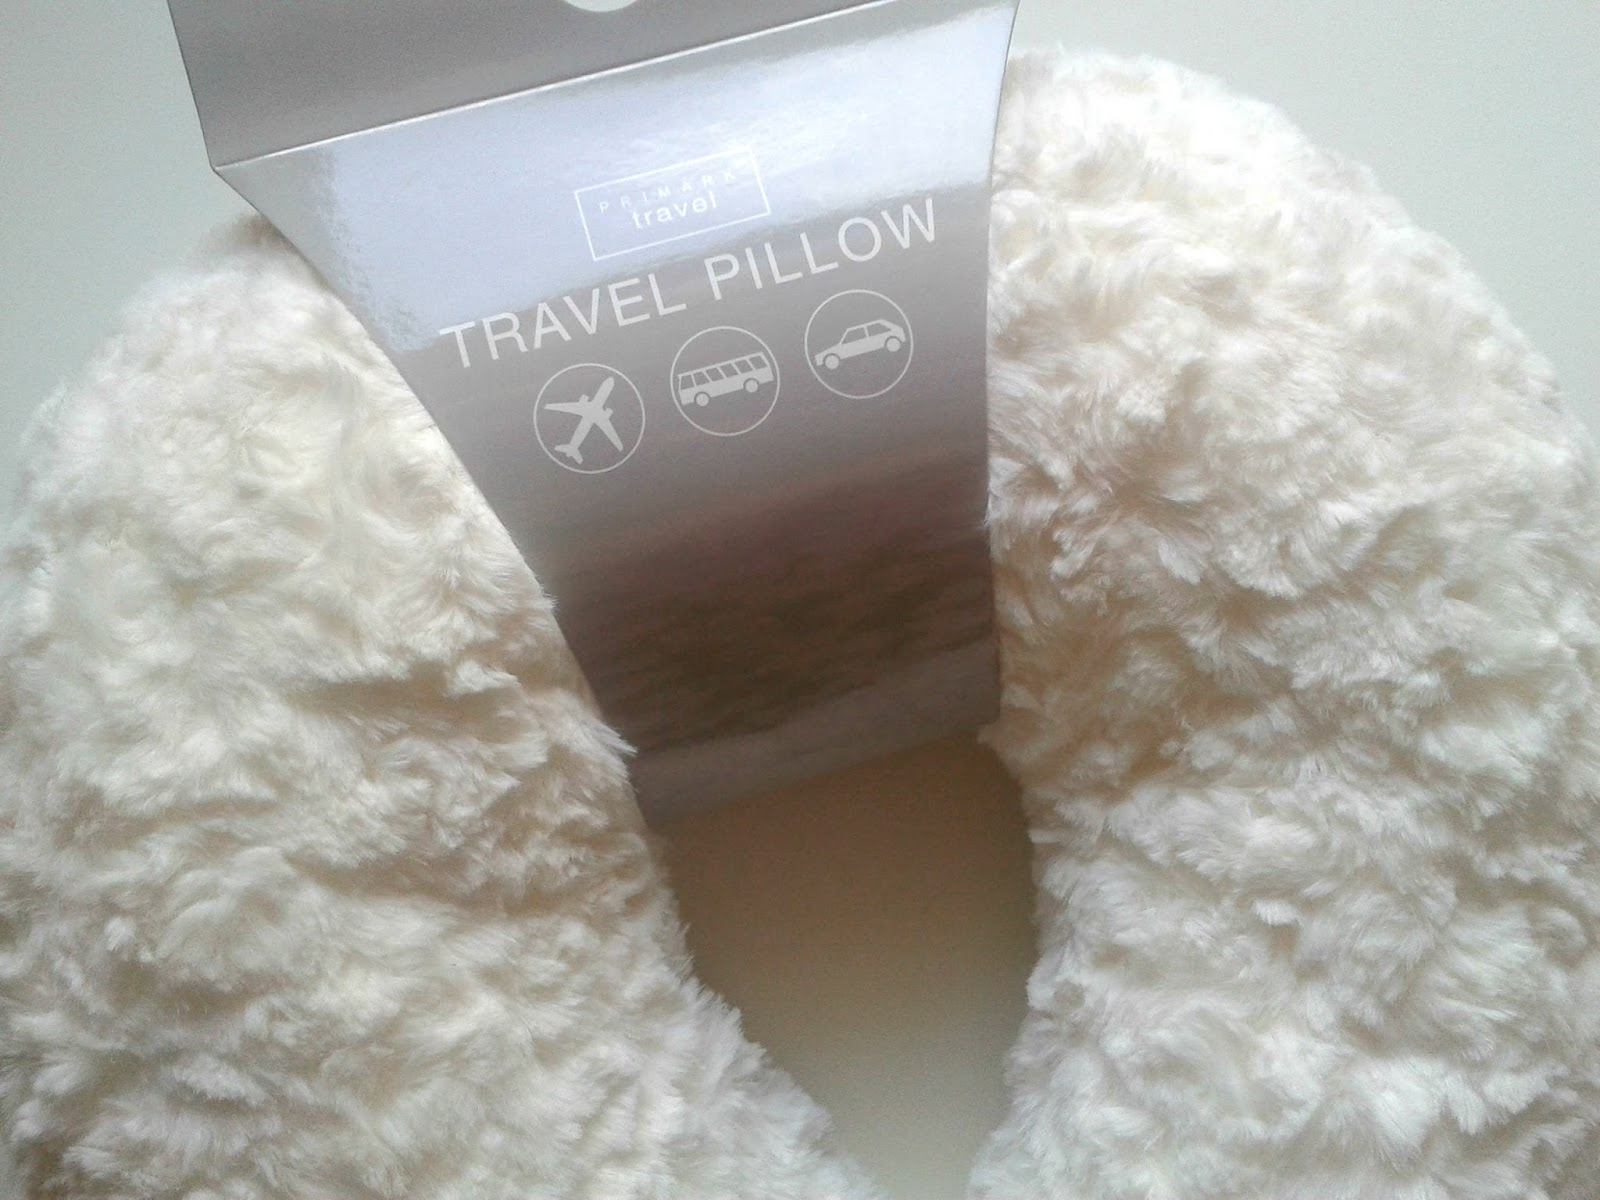 Primark Travel Pillow My Long Haul Flight Essentials Beauty Review